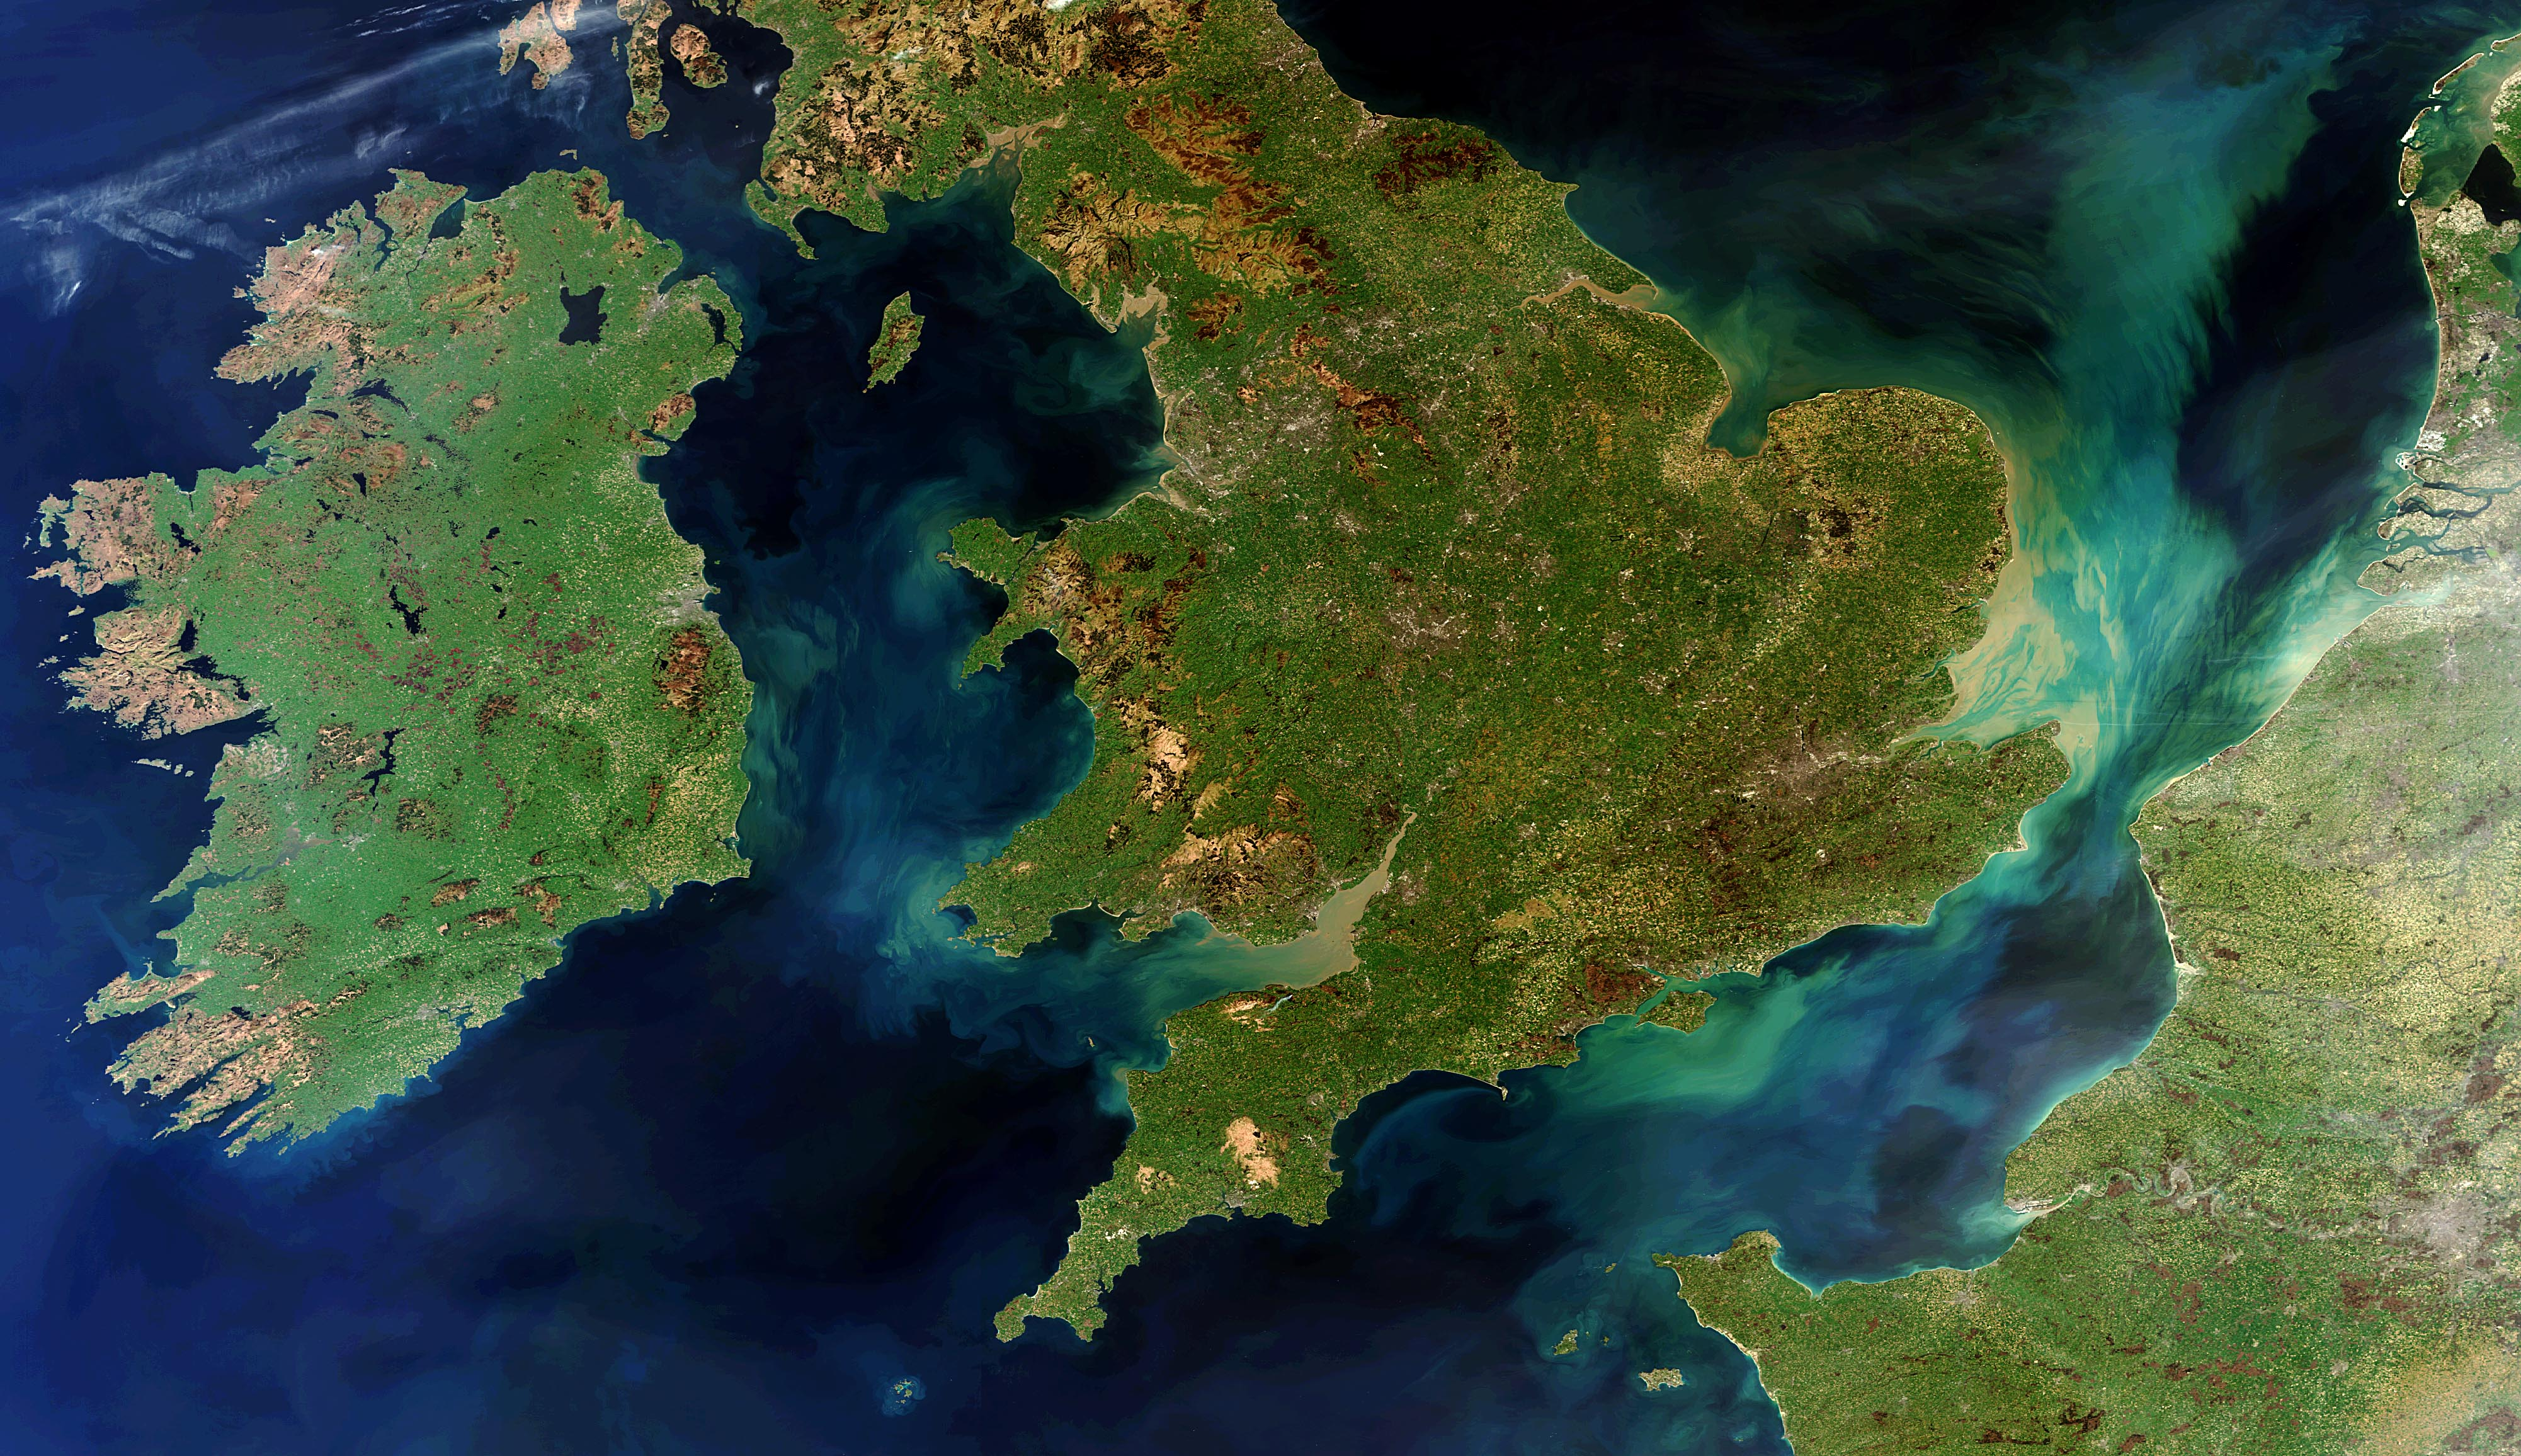 Ireland, Great Britain and Northern France from space. Credit The European Space Agency